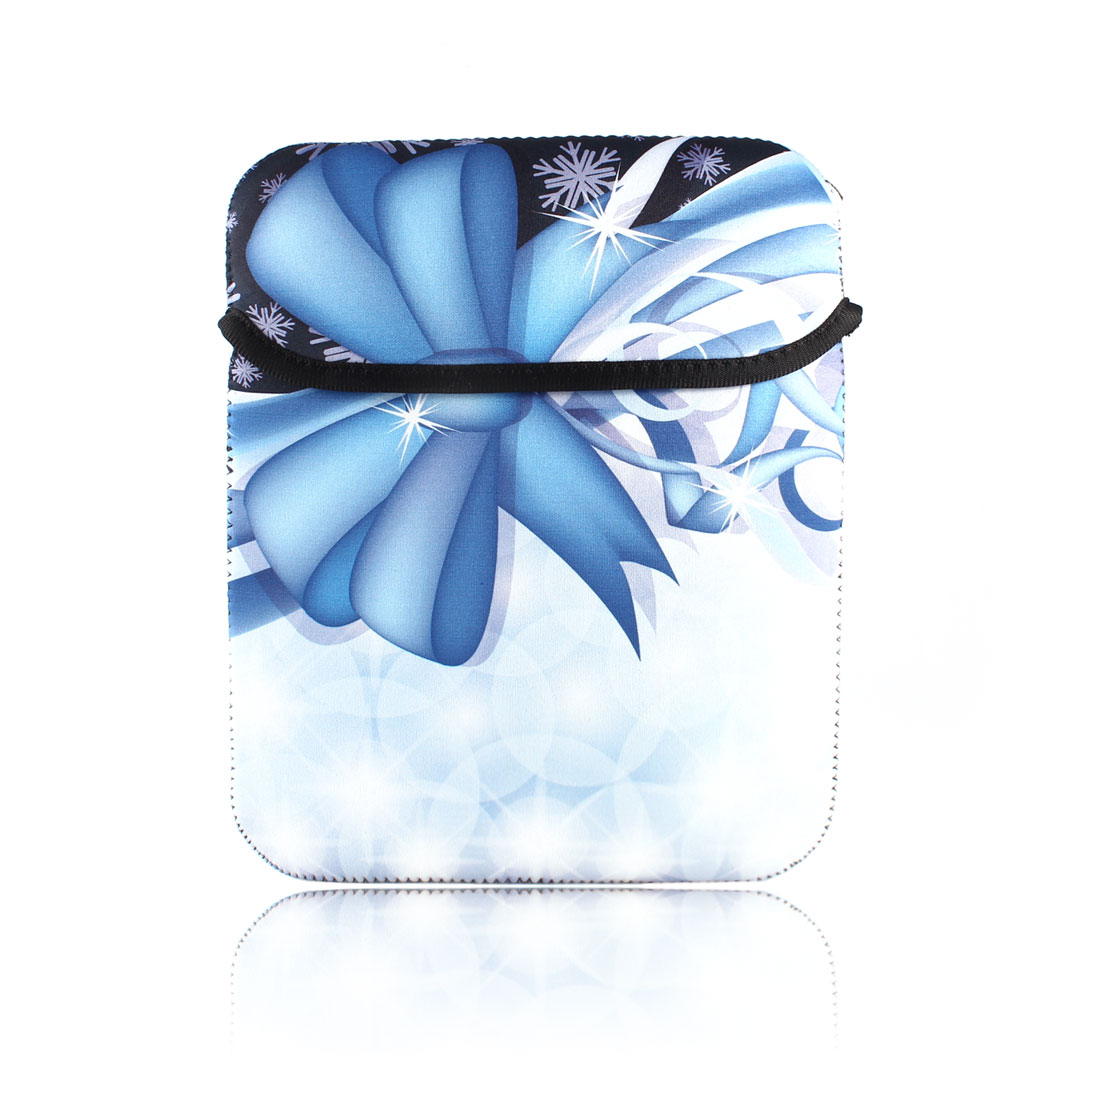 10 Inches White Blue Snowflake Printed PC Sleeve Bag Guard Pouch Case